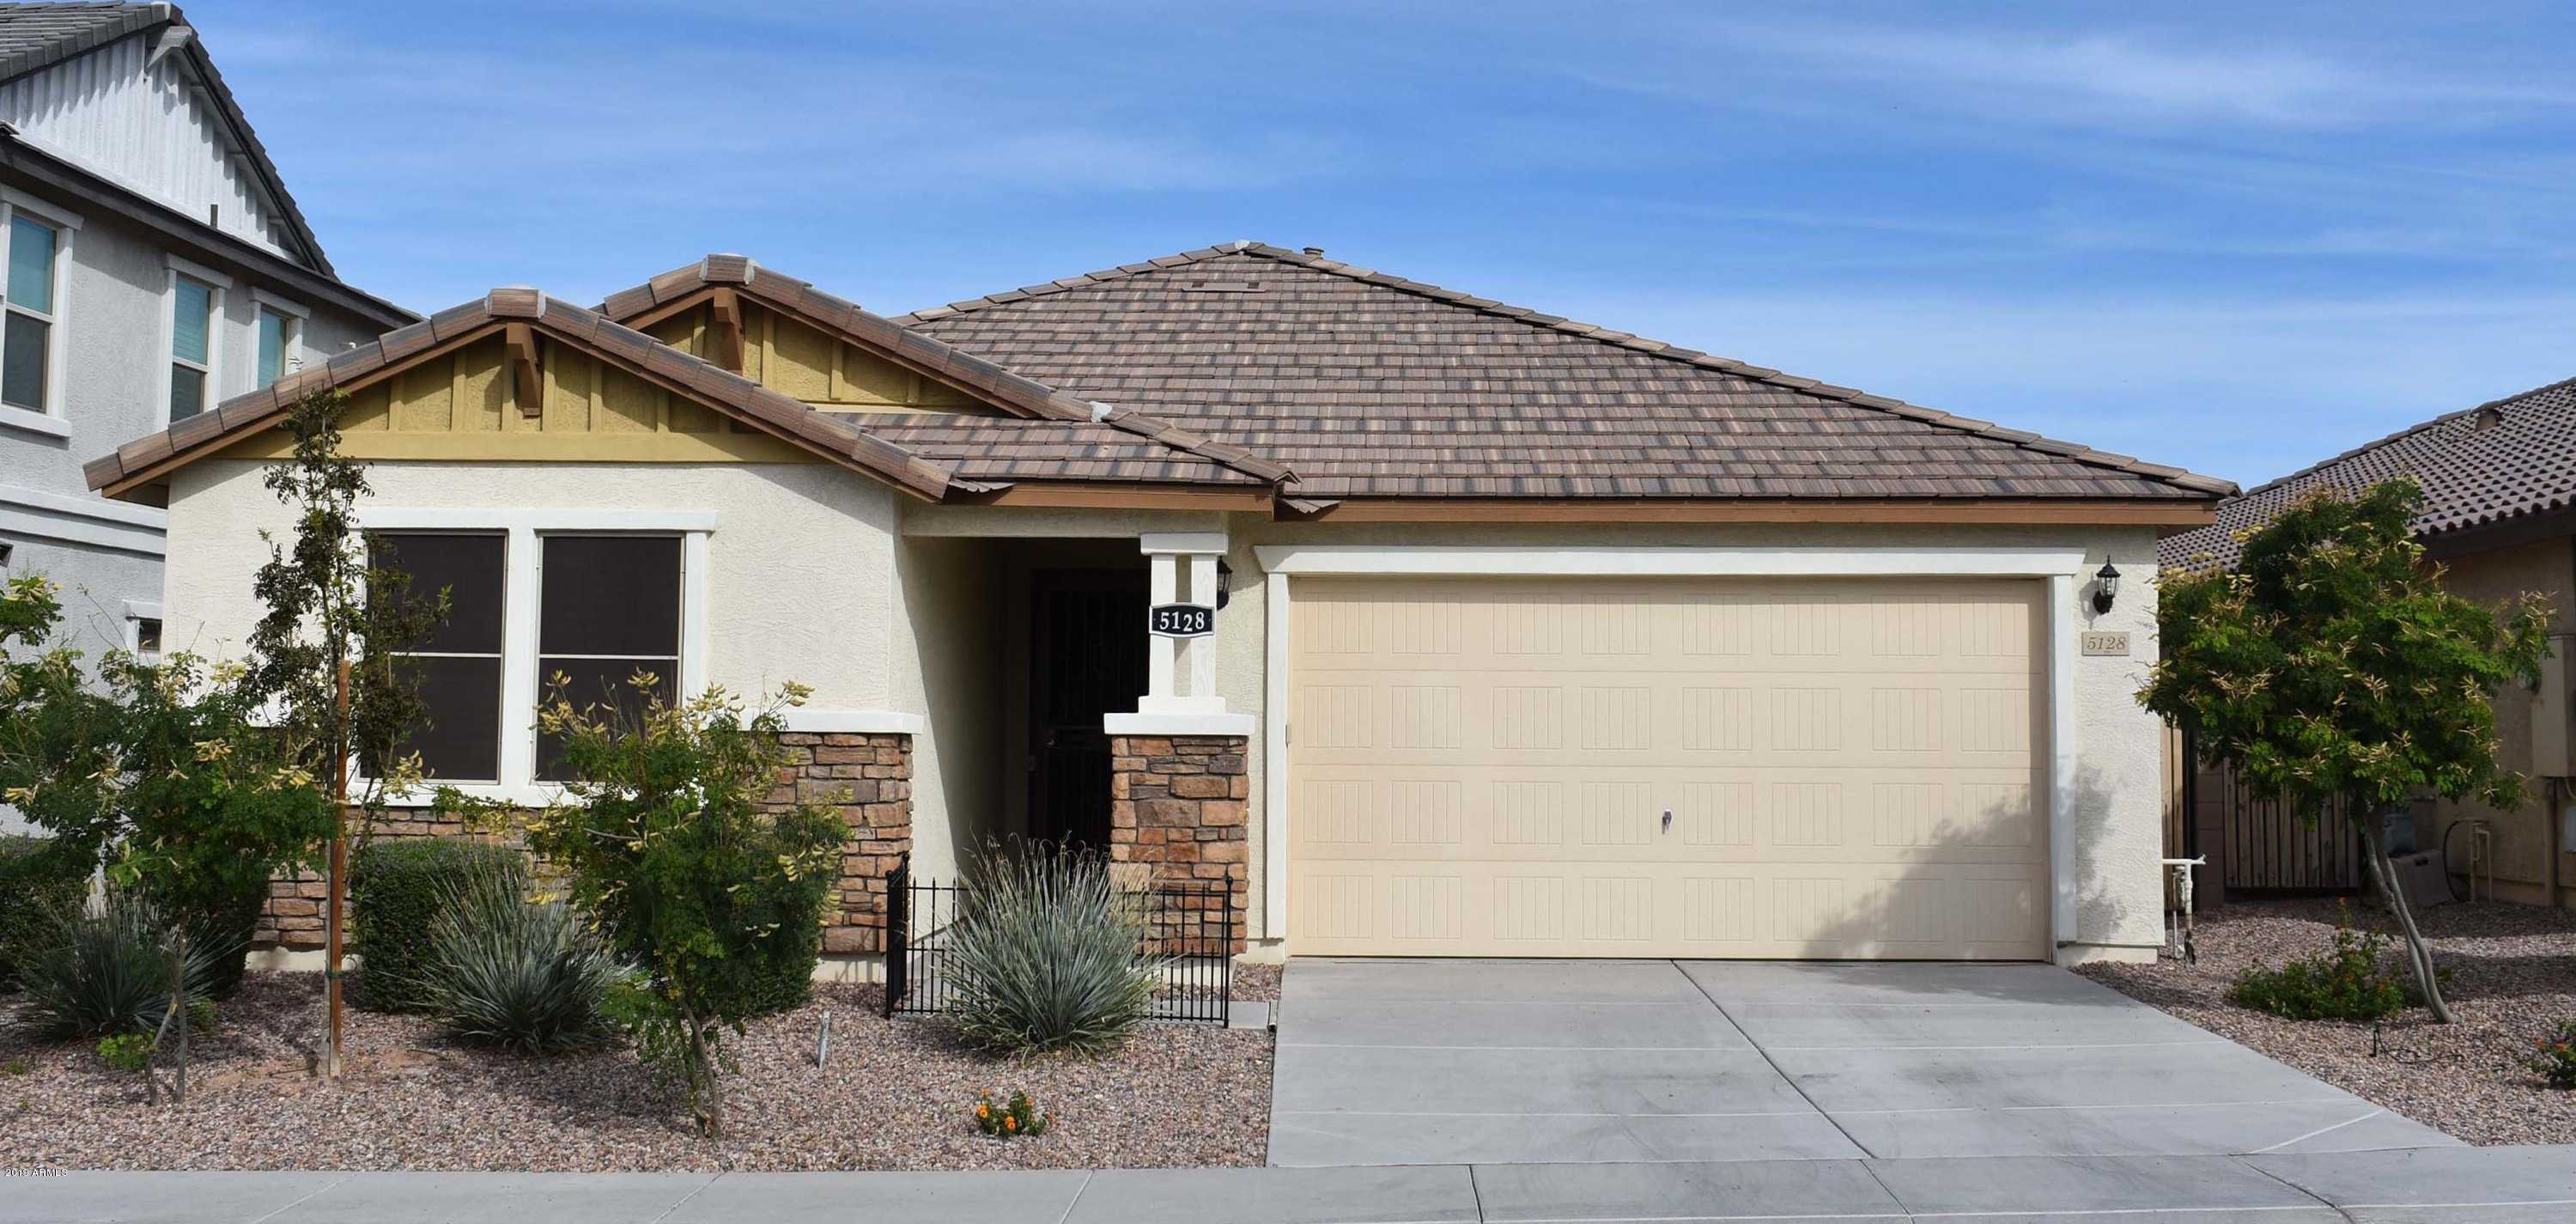 $400,000 - 4Br/3Ba - Home for Sale in Higley Heights Phase 1 Amd, Mesa